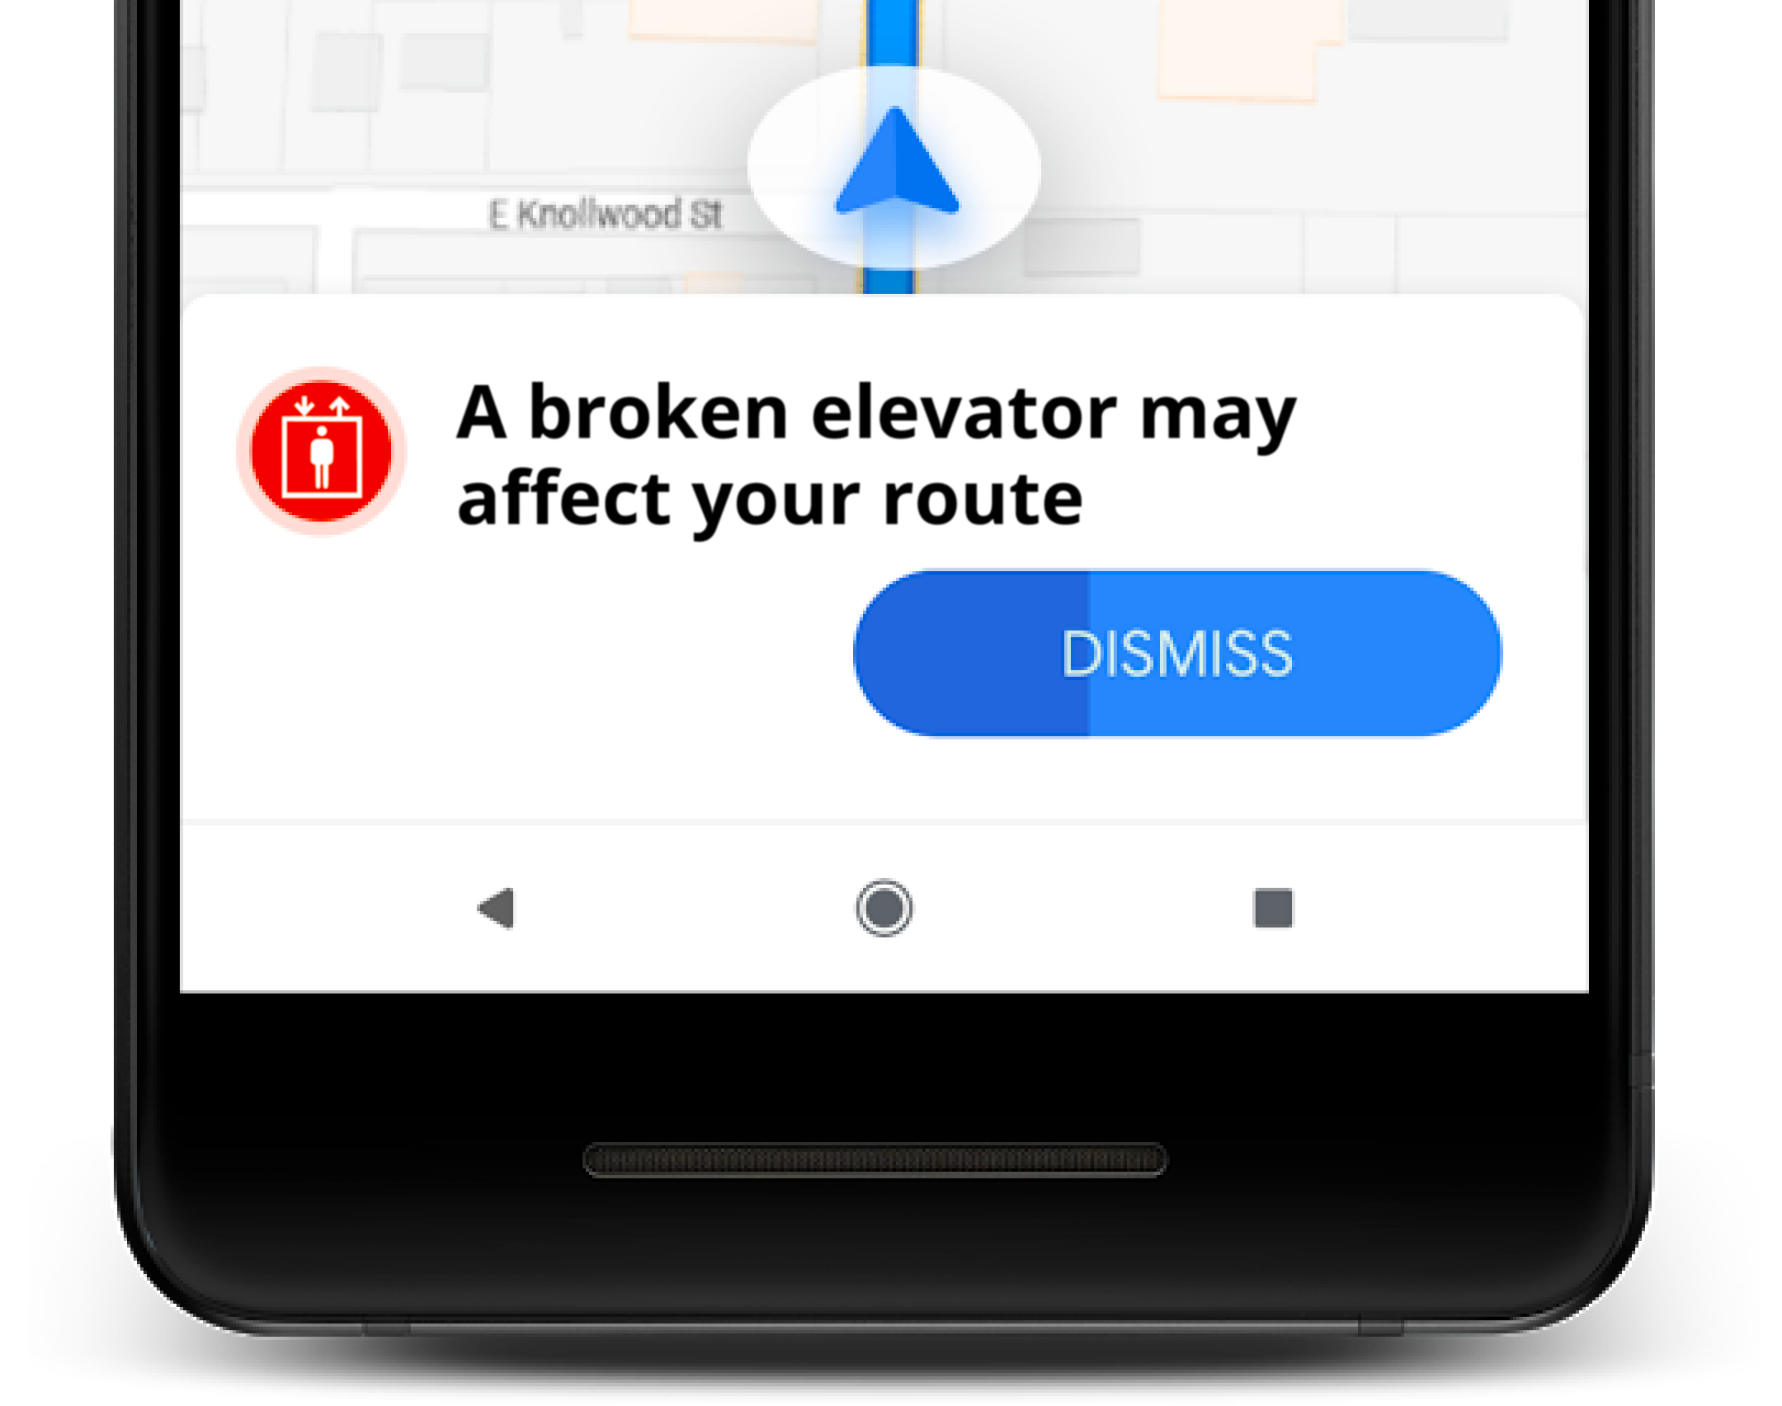 """A notification in Google Maps featuring an elevator icon and says: """"A broken elevator may affect your route"""". The notification looks similar to existing traffic jam notifications."""